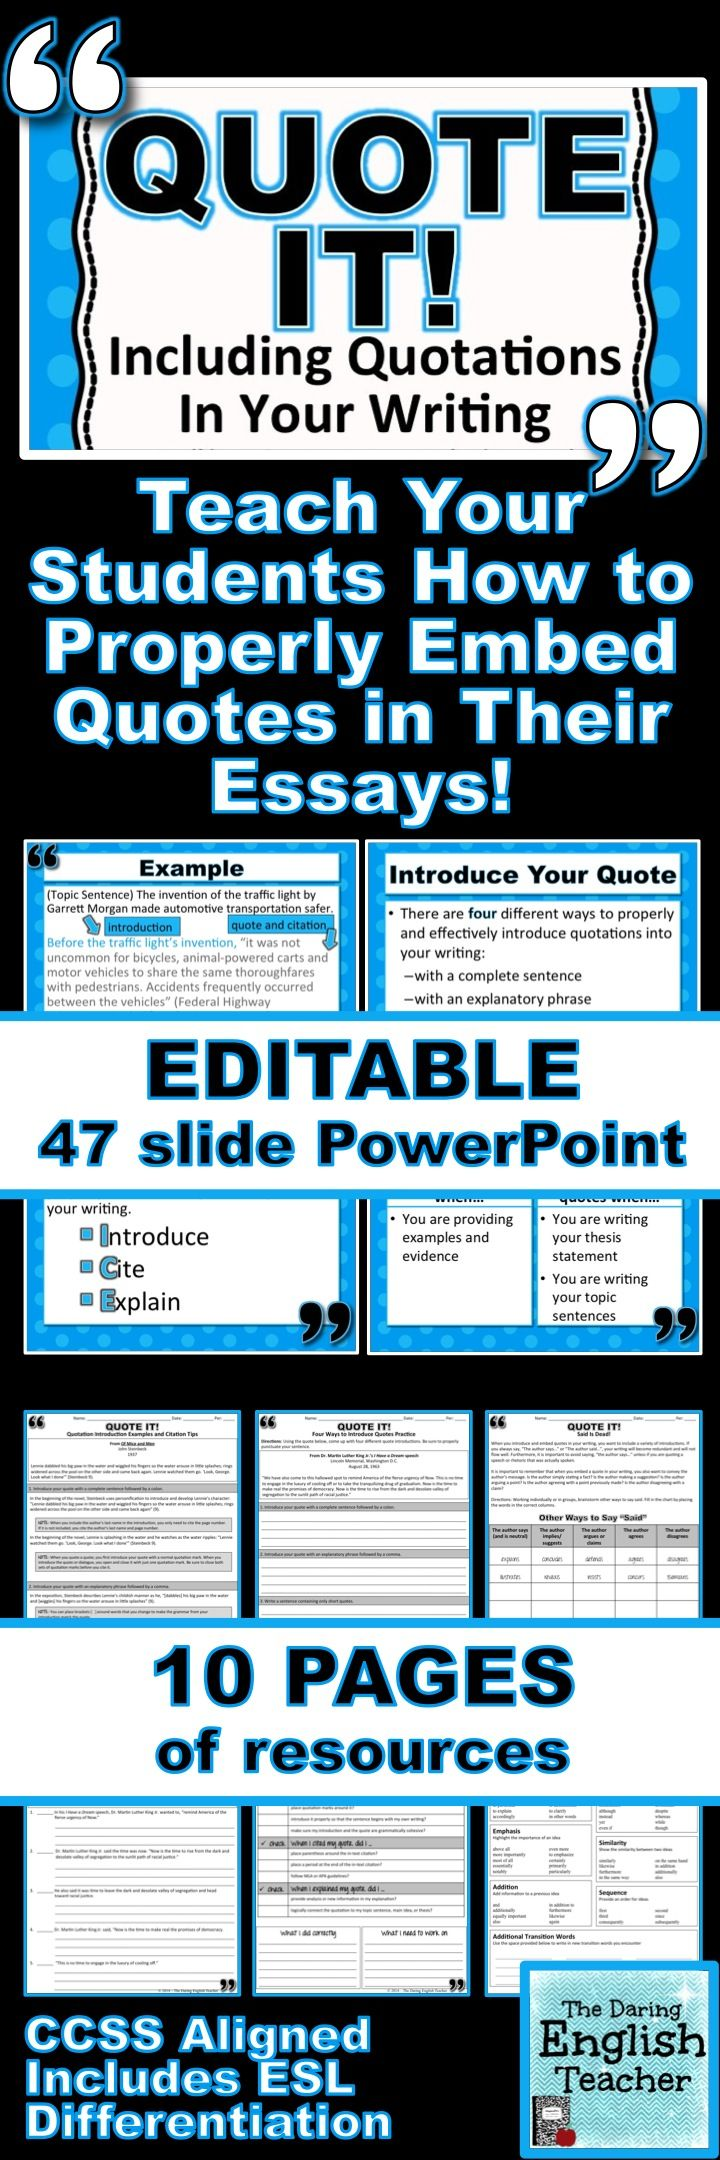 teaching essay writing in middle school Teaching essay writing in secondary schools is very important, as writing is an essential life school there are resources at your disposalfor teaching essay writing to your students.